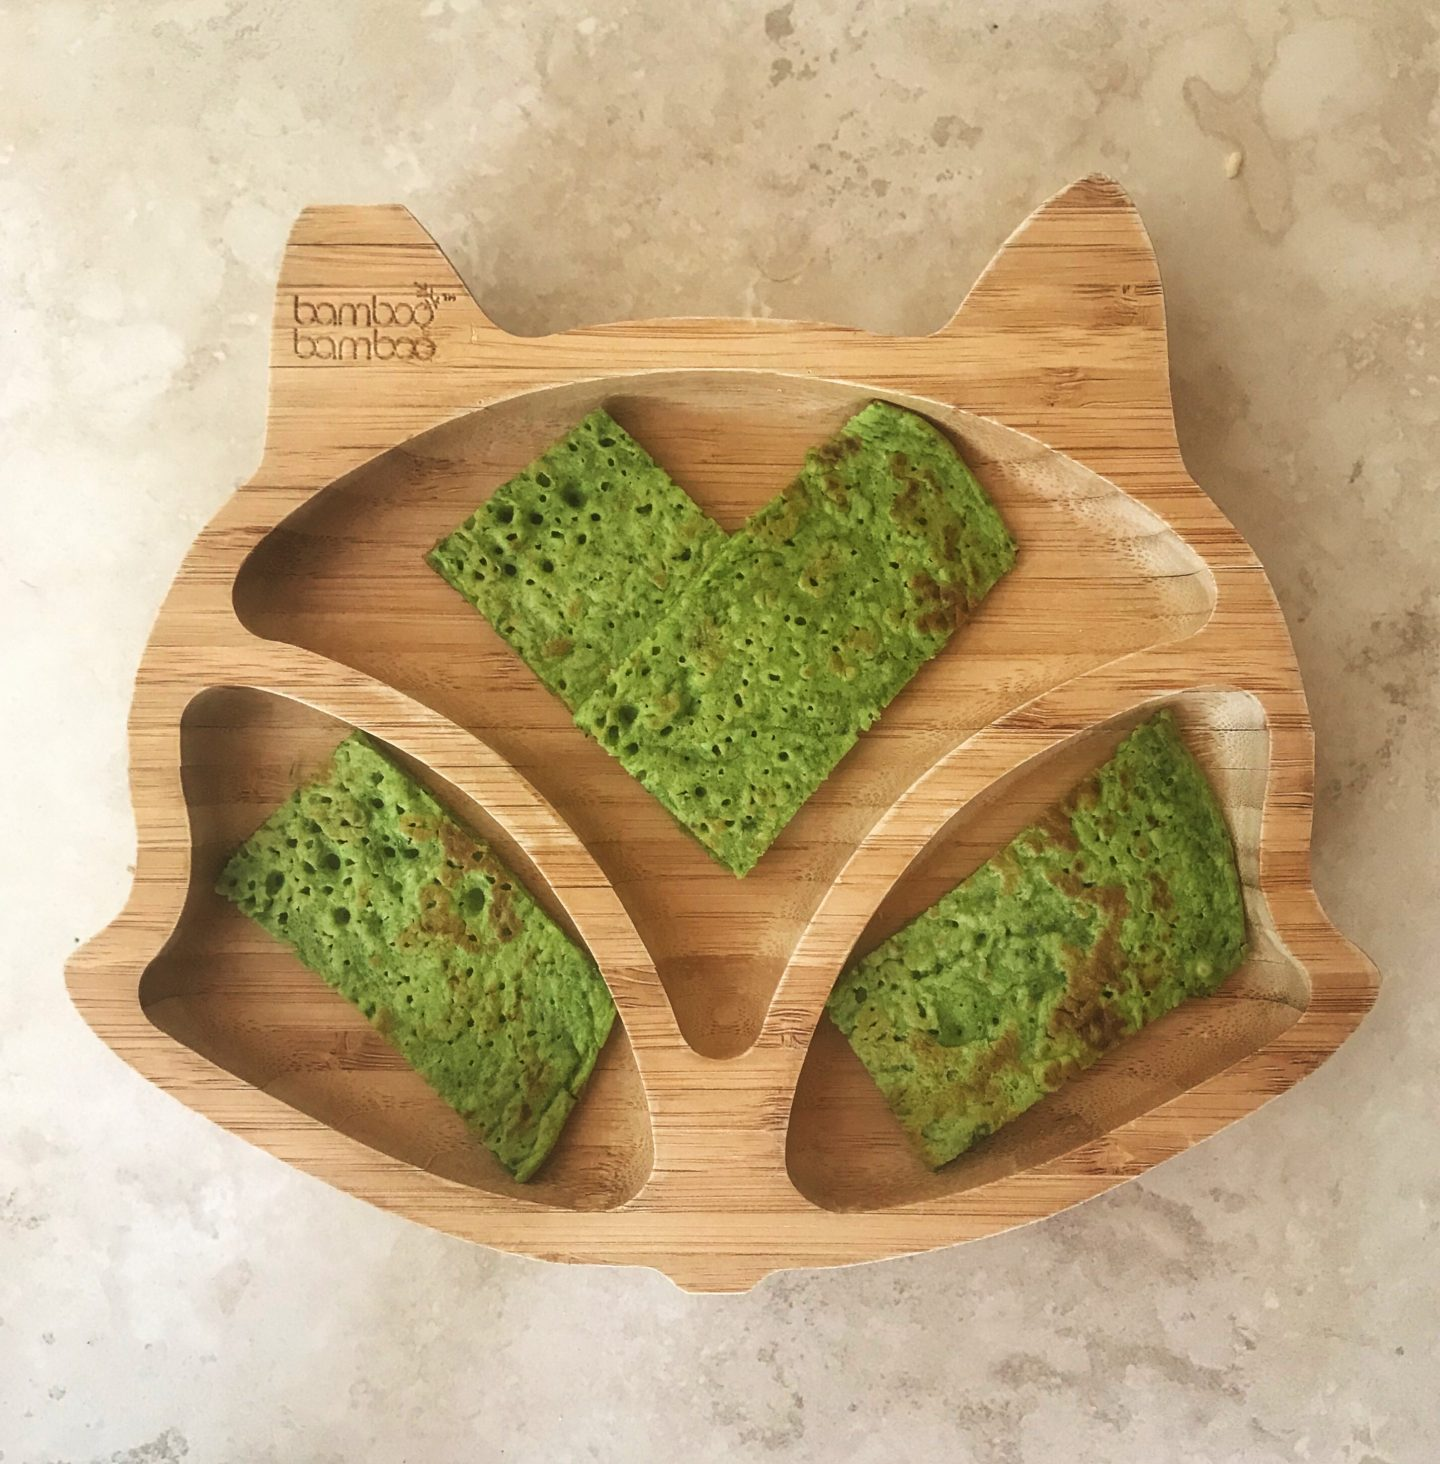 Baby Led weaning spinach pancakes on a bamboo bamboo plate